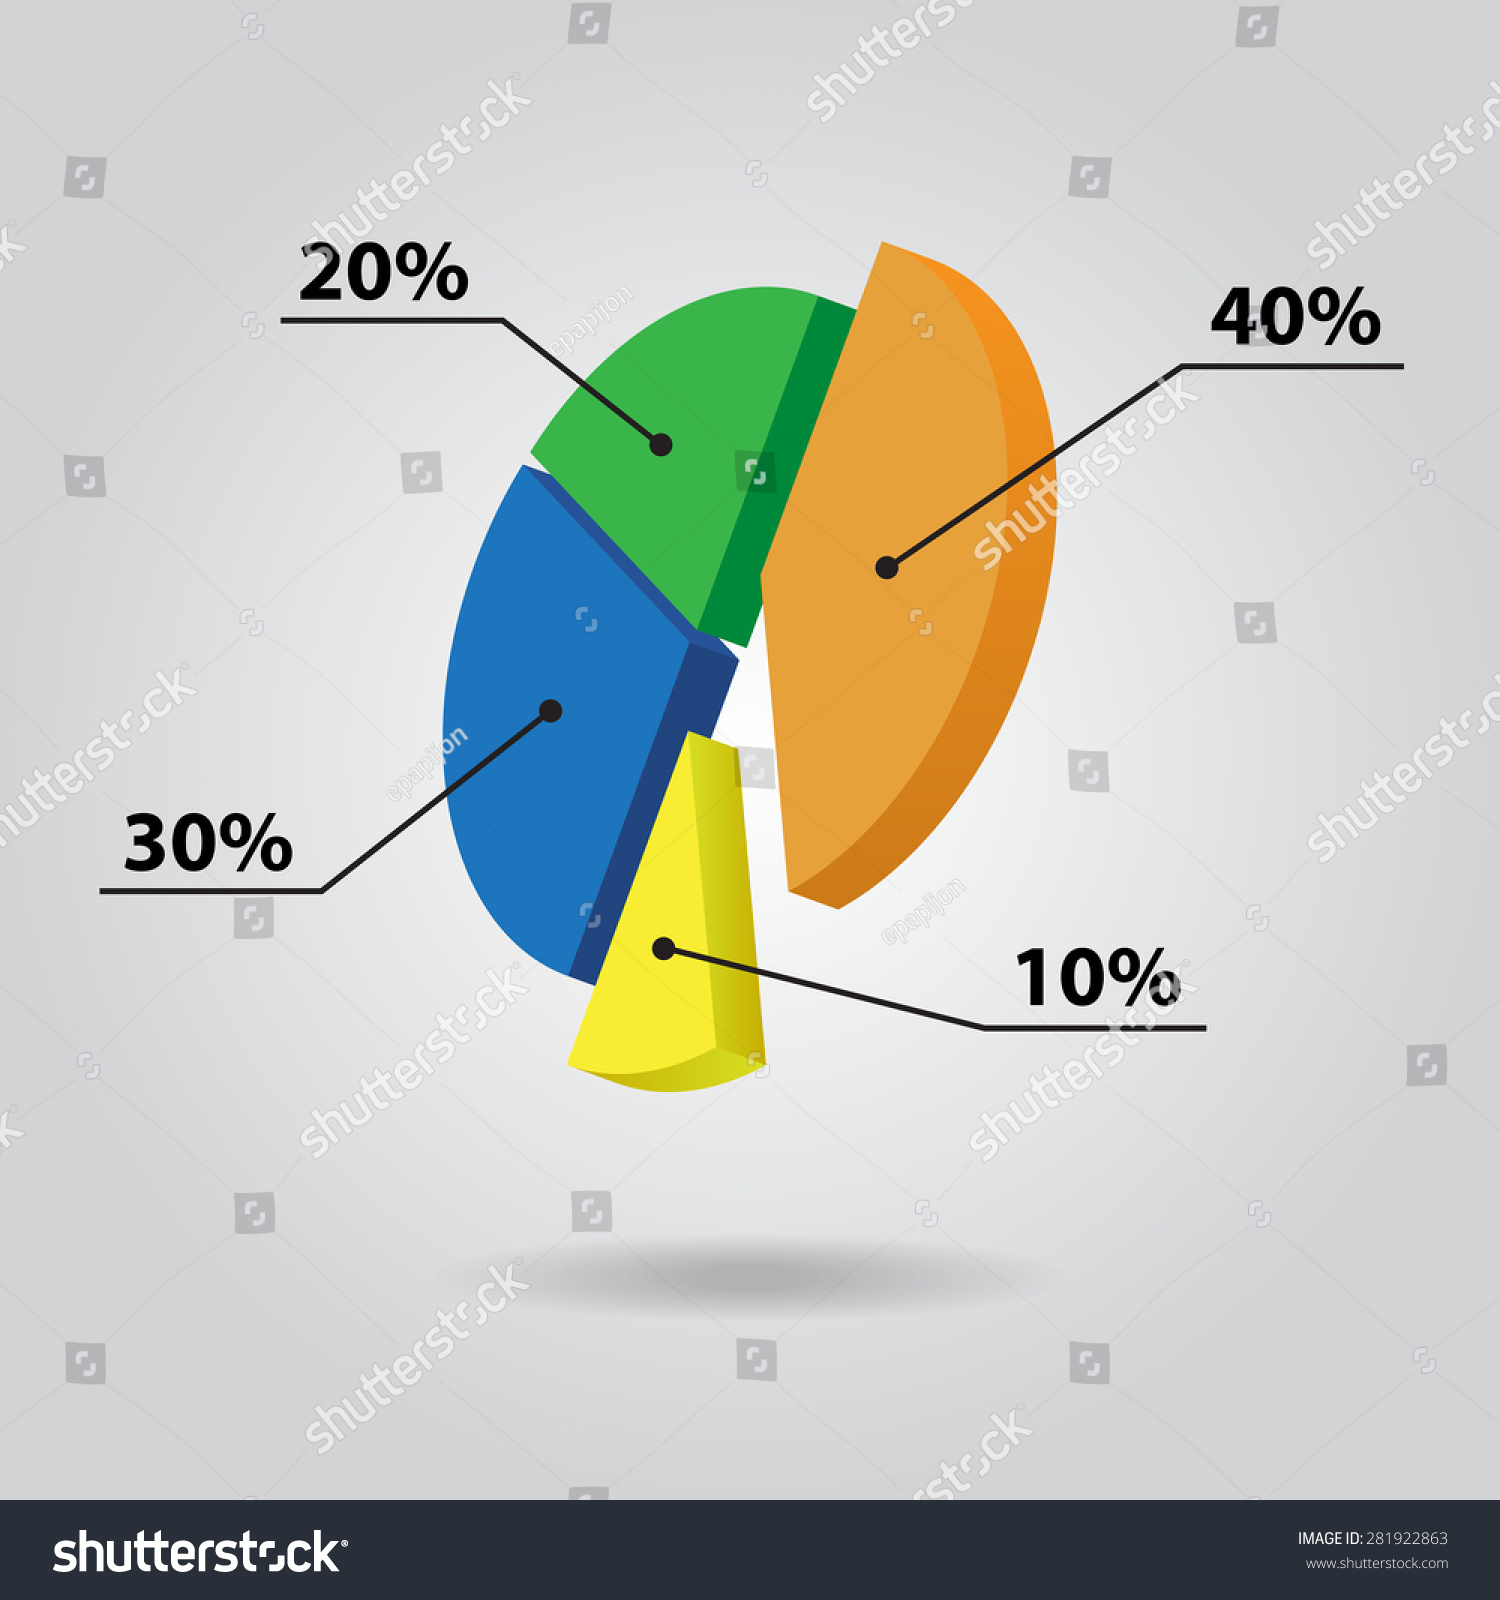 Pie chart color scheme choice image free any chart examples colour pie chart gallery free any chart examples excel pie chart colors choice image free any nvjuhfo Images